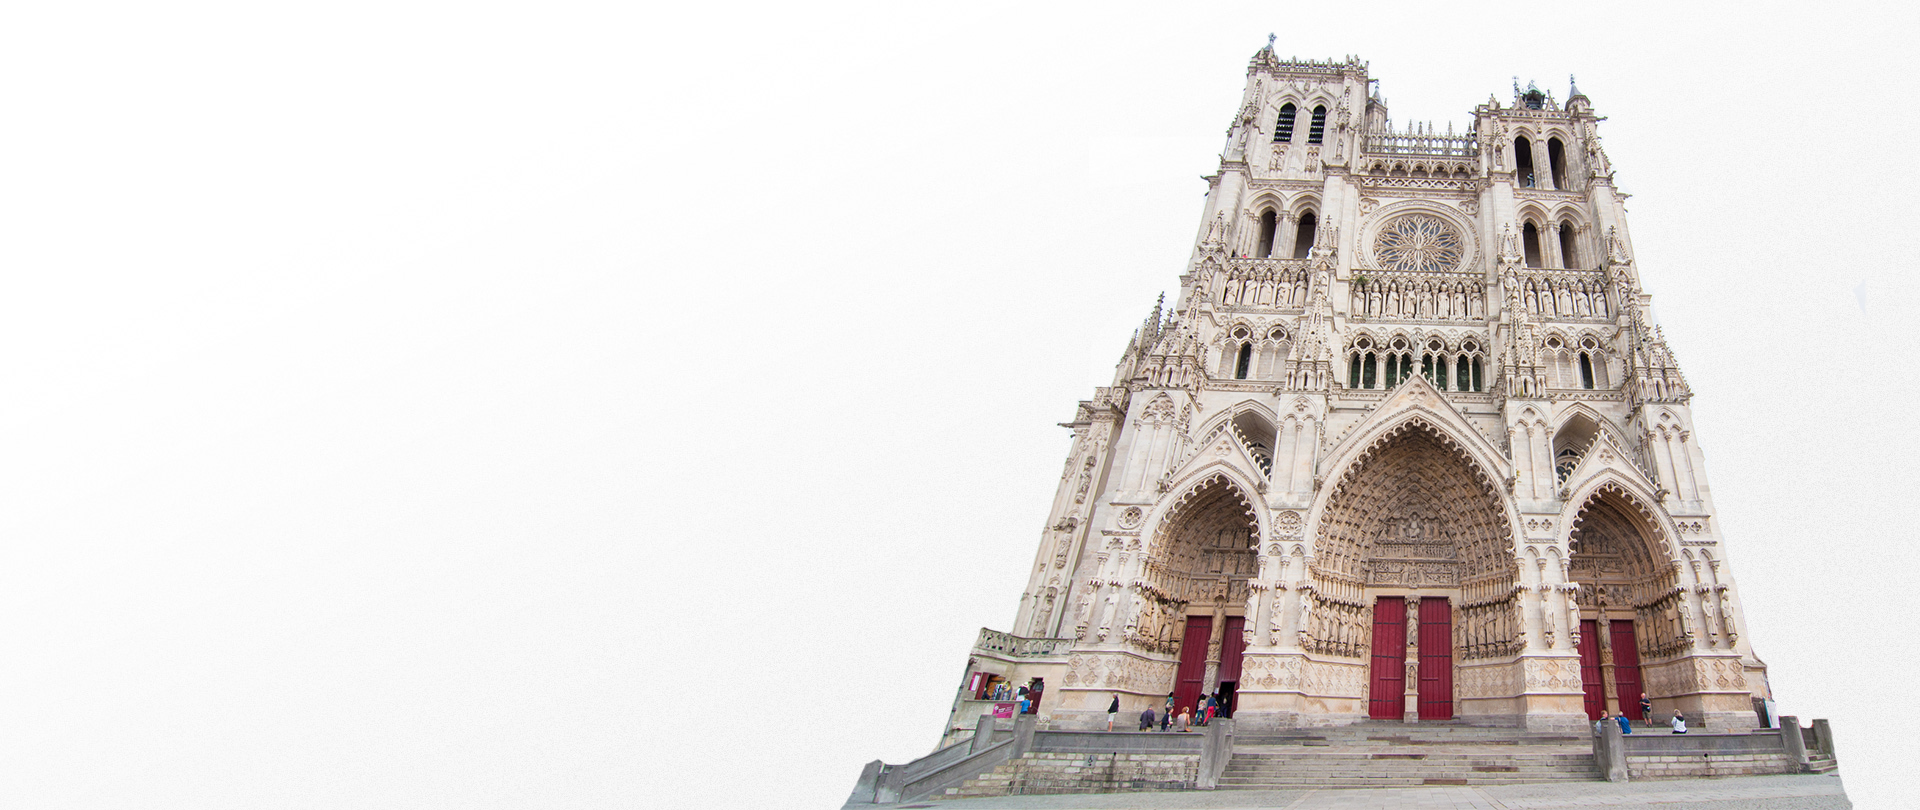 Explore the city of Amiens